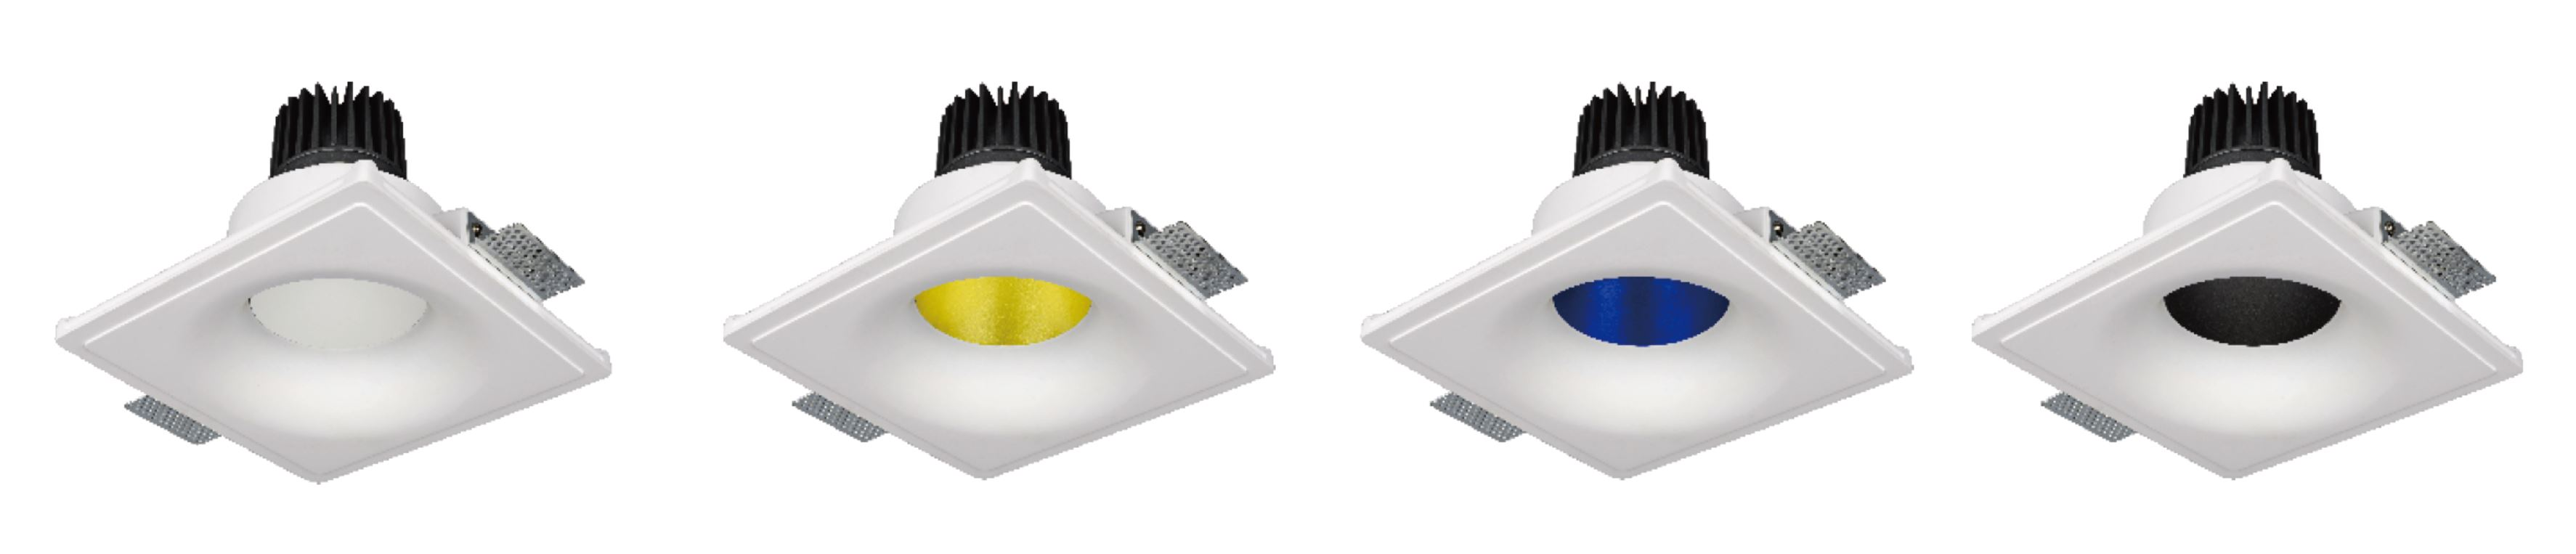 Dip Gibskarton LED Downlight Farben